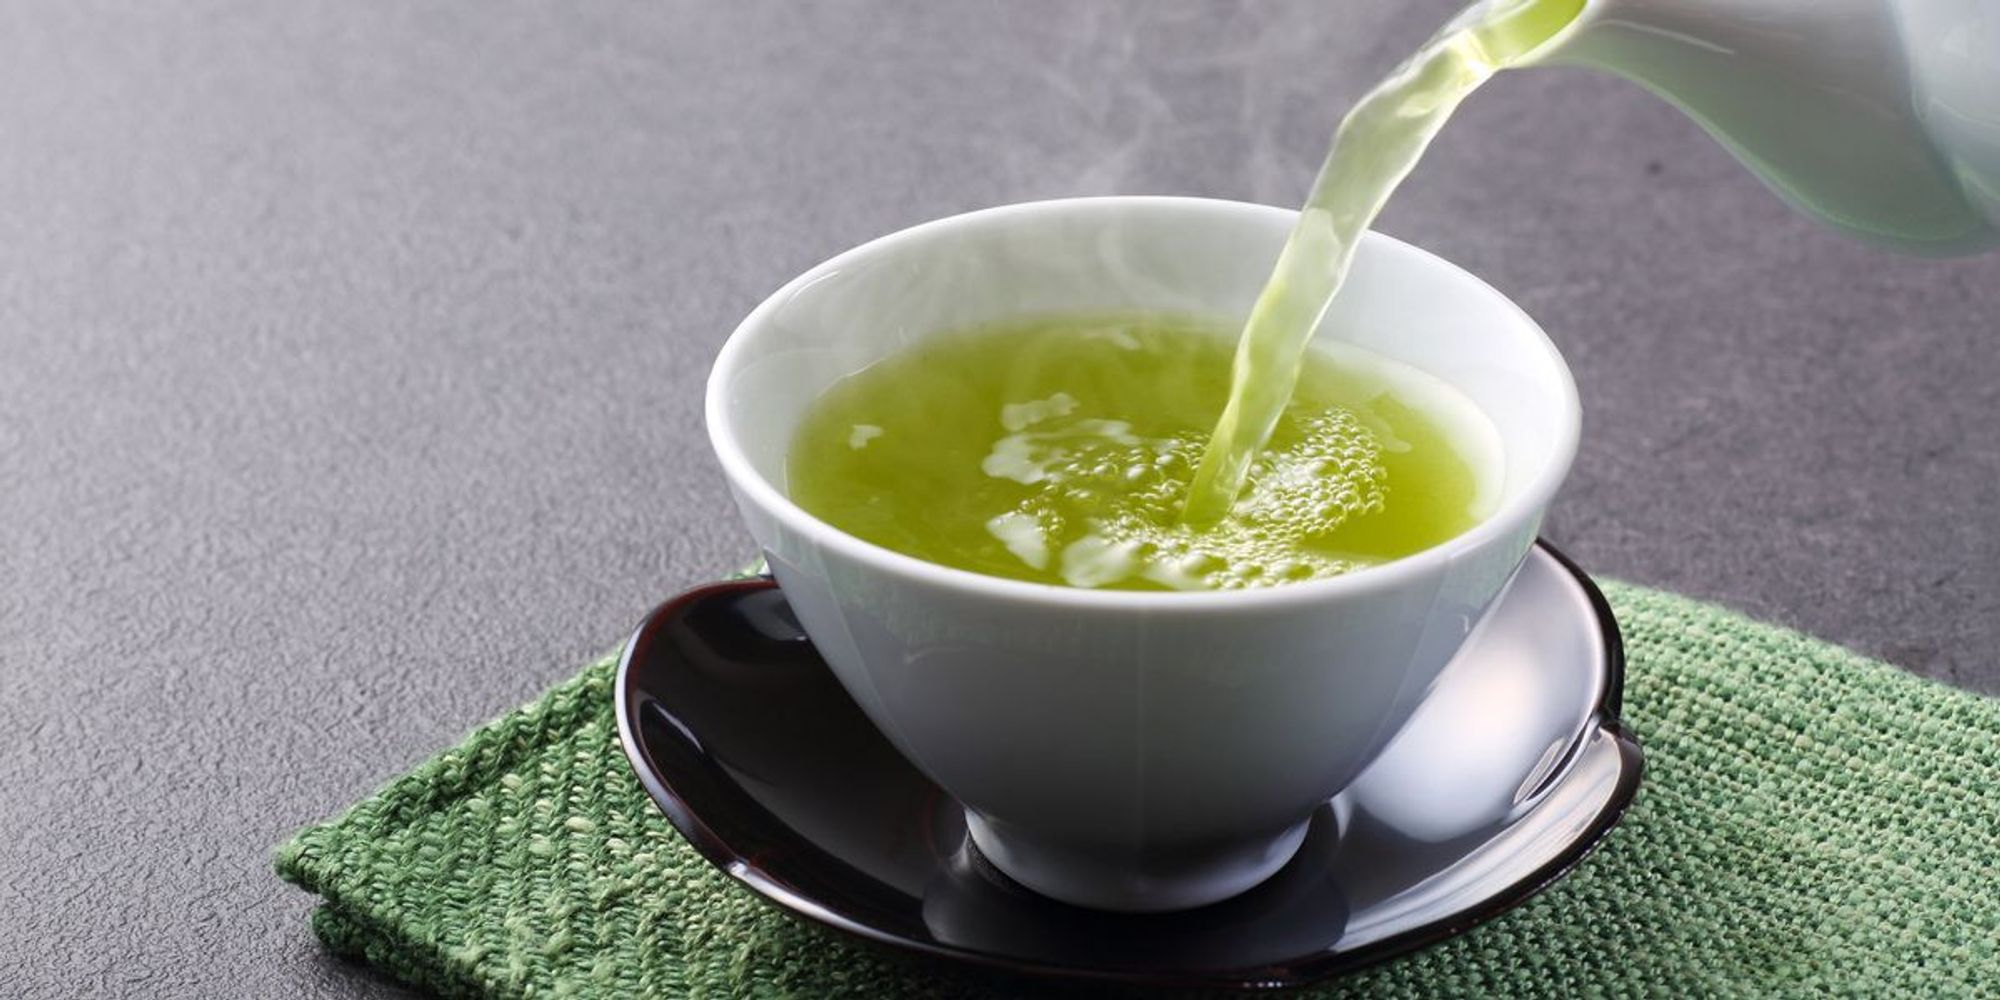 11 benefits of green tea you didn't know about - healthywomen